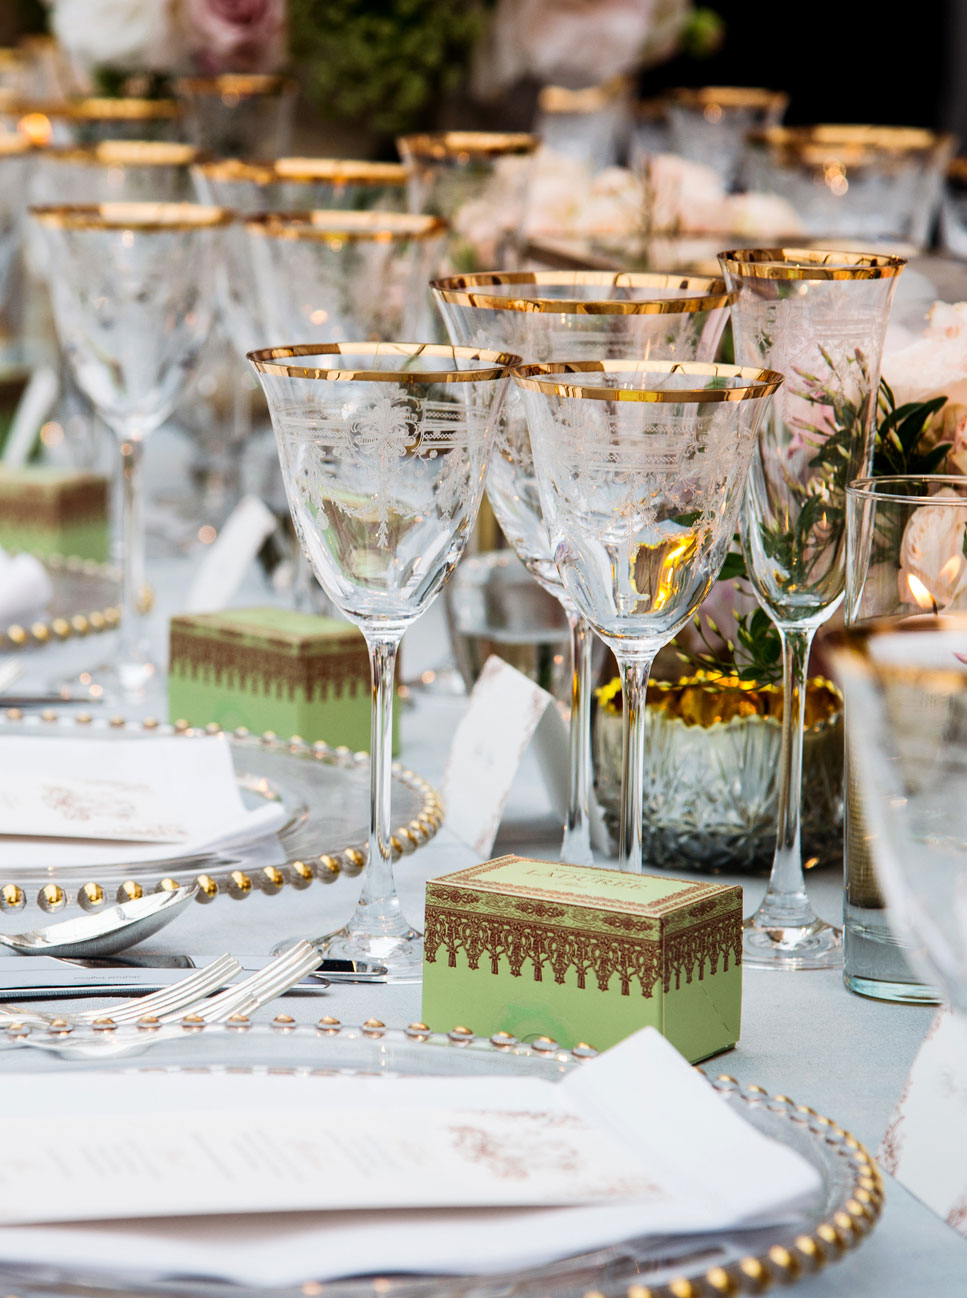 A party table setting with gold rimmed glasses.